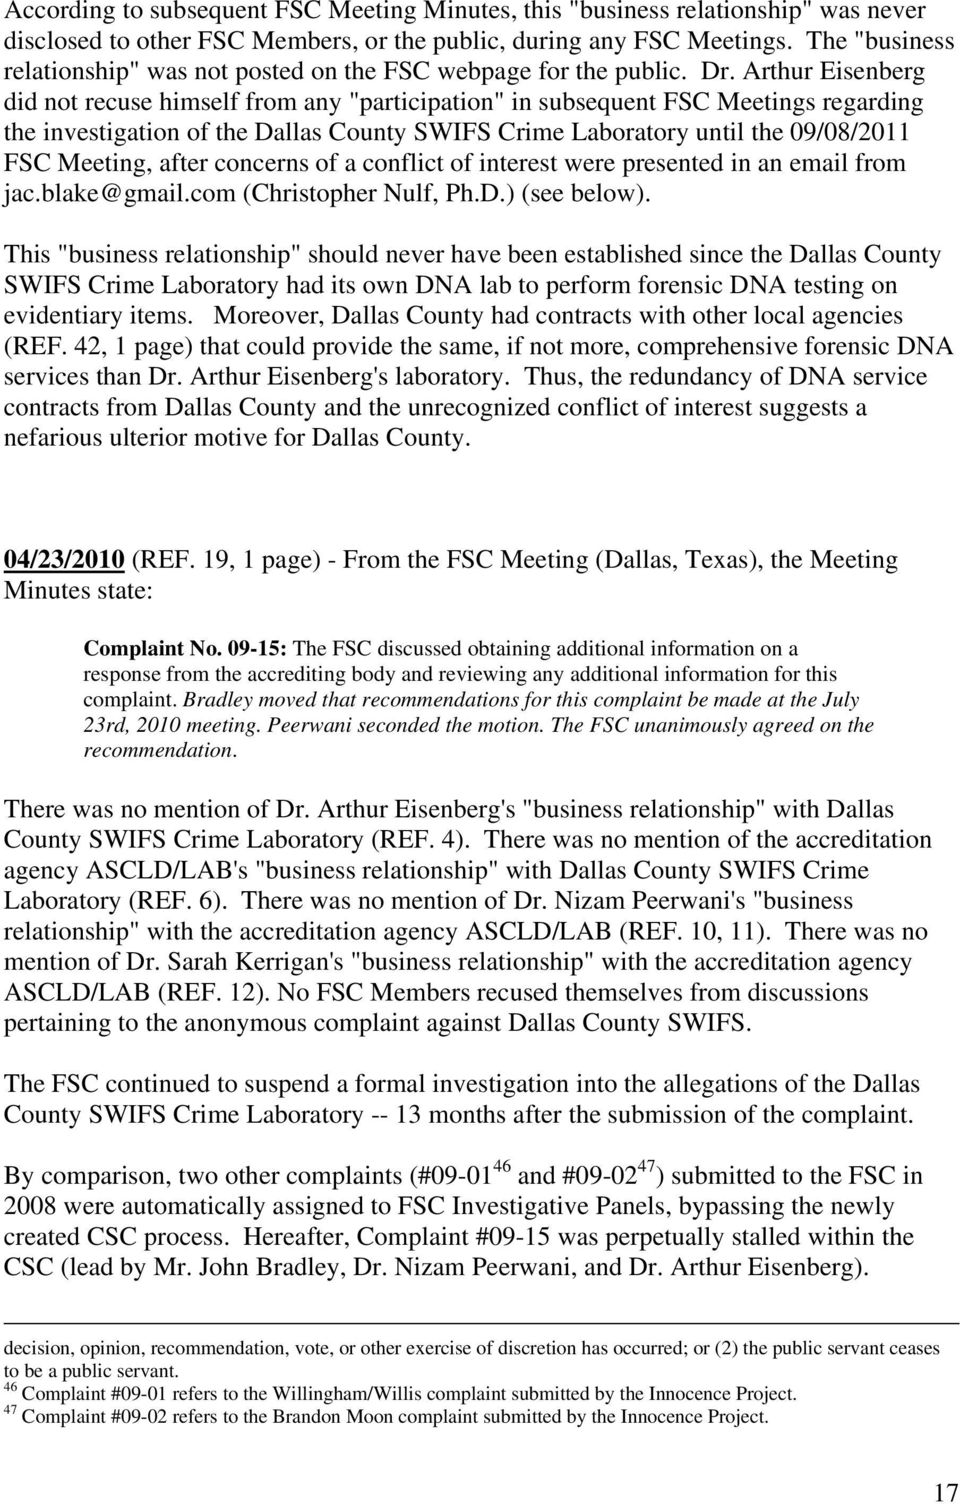 "Arthur Eisenberg did not recuse himself from any ""participation"" in subsequent FSC Meetings regarding the investigation of the Dallas County SWIFS Crime Laboratory until the 09/08/2011 FSC Meeting,"